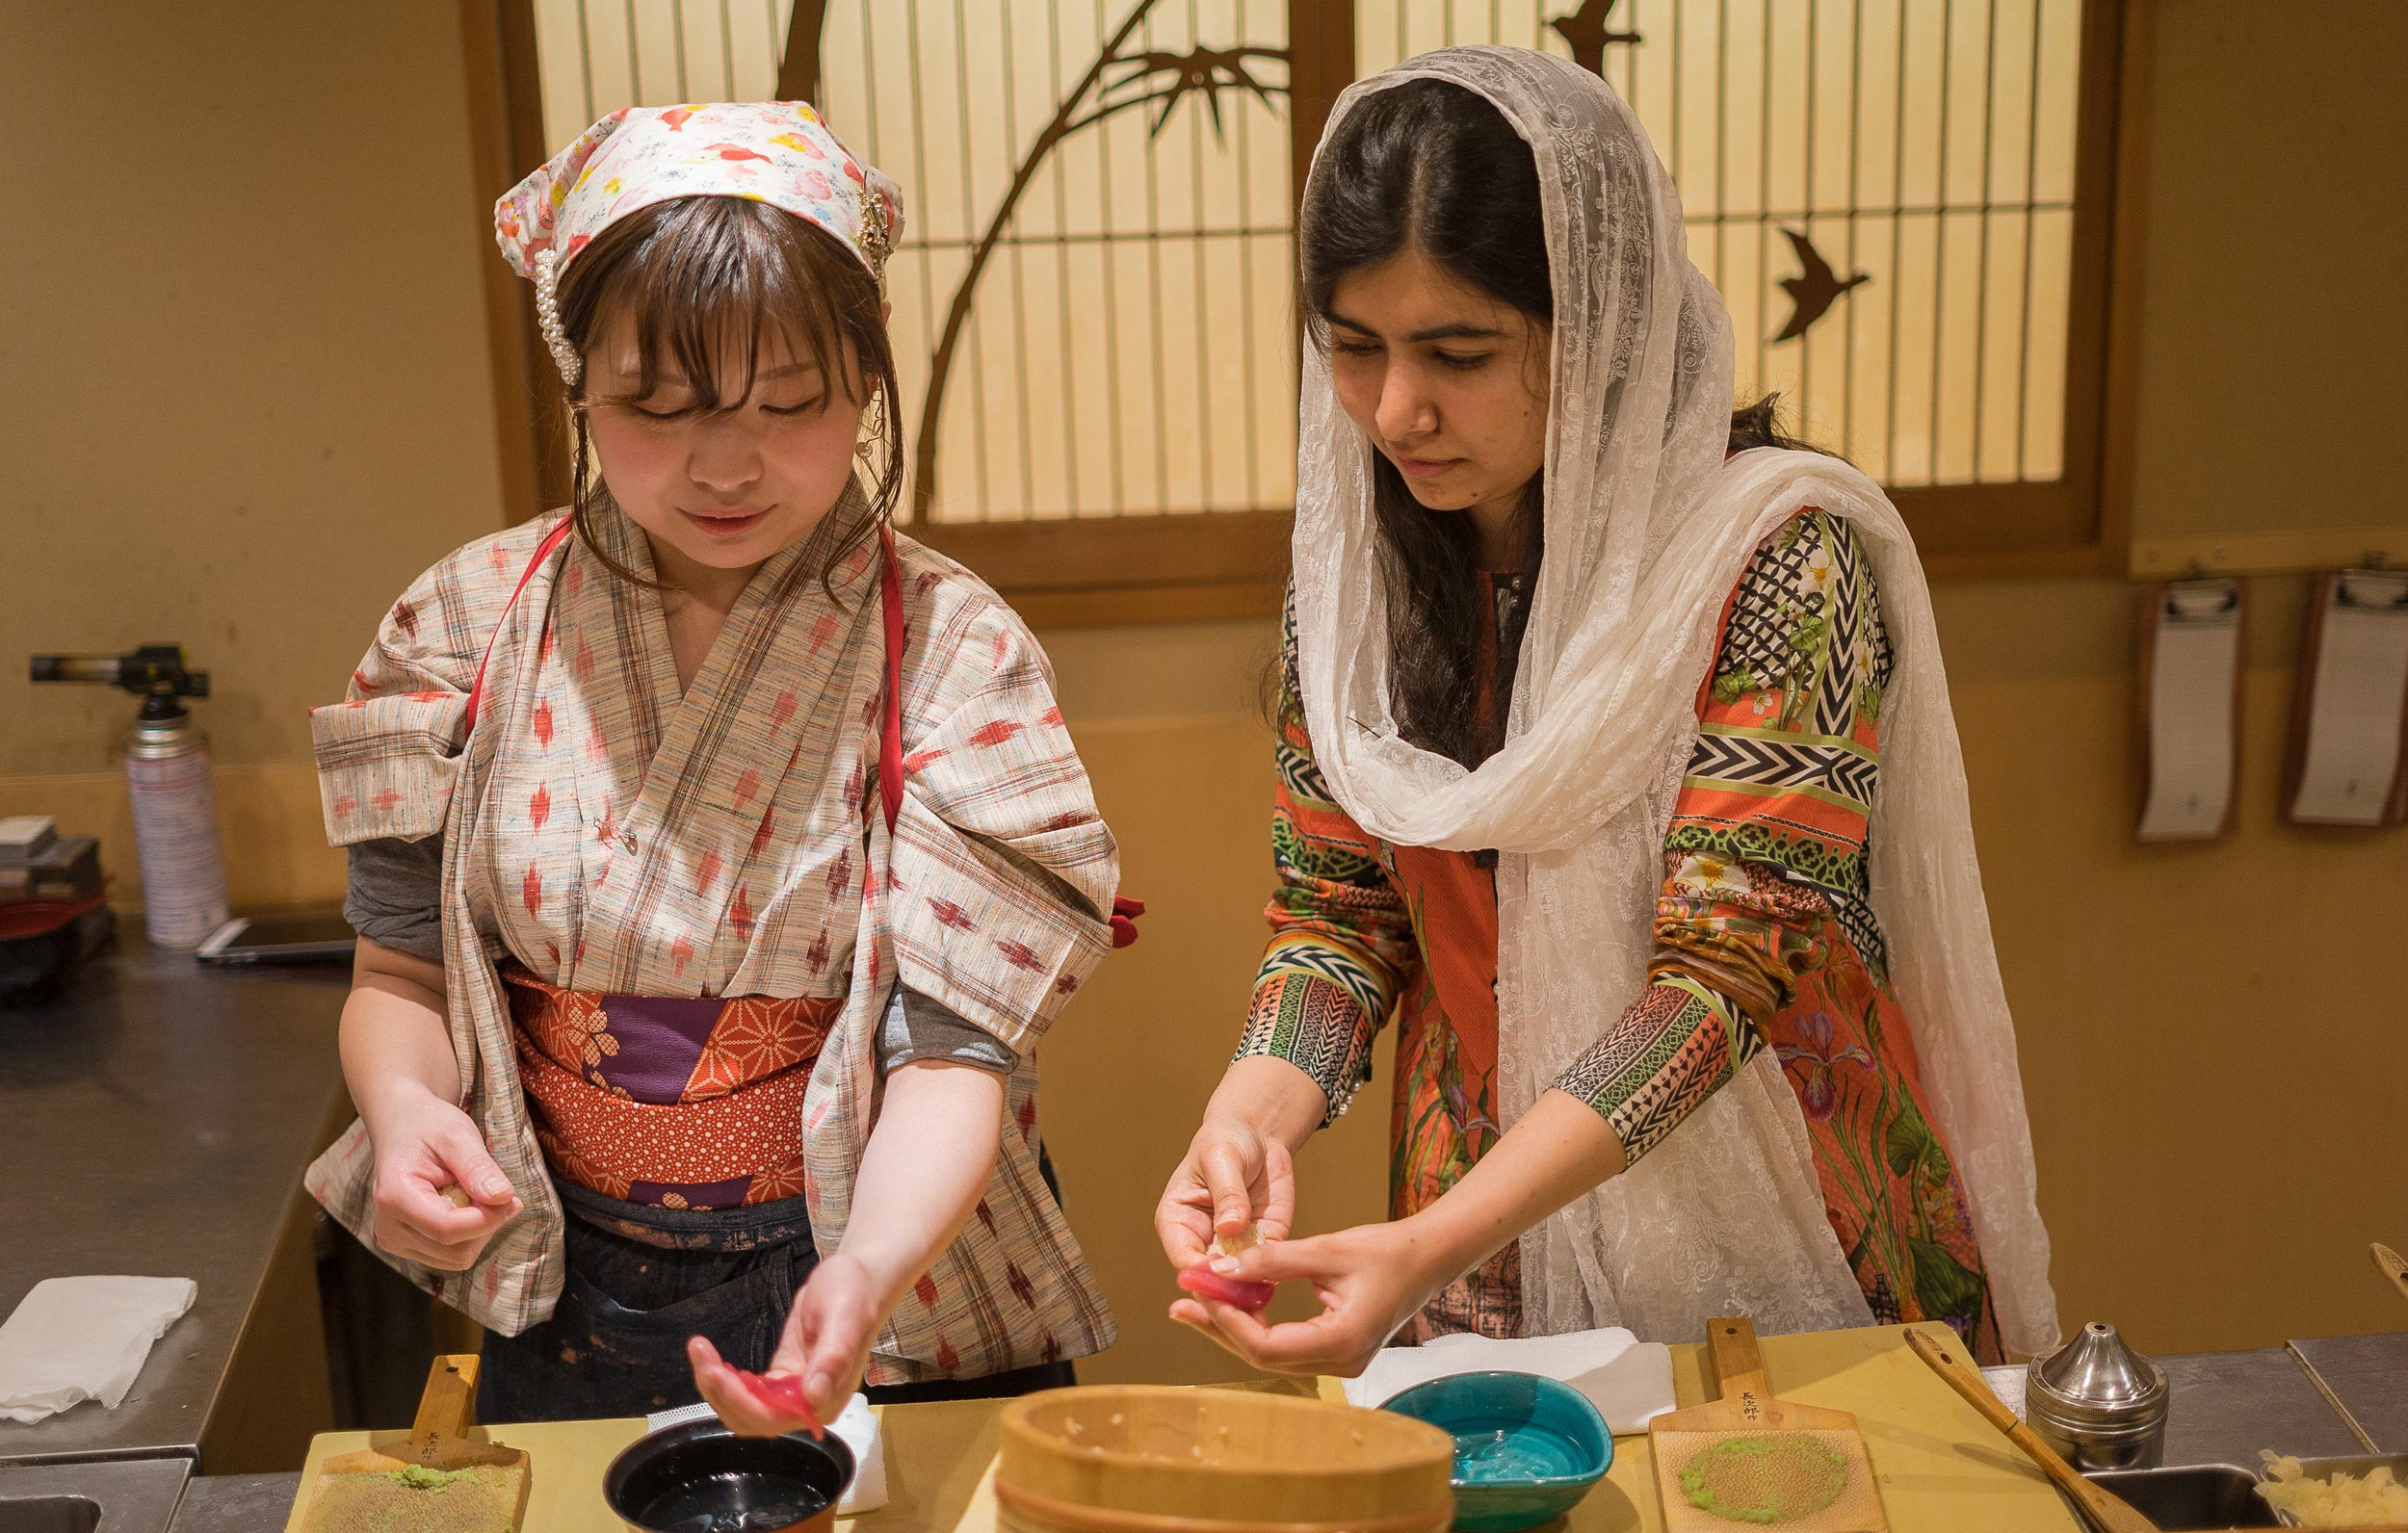 On her trip to Tokyo, Malala Yousafzai visited Yuki Chizui at her restaurant, Nadeshiko Sushi, to hear about her work to advance women in the industry. After sampling some dishes, Yuki taught Malala how to make sushi in the Japanese tradition. (Courtesy of Amarachi Nwosu / Malala Fund)